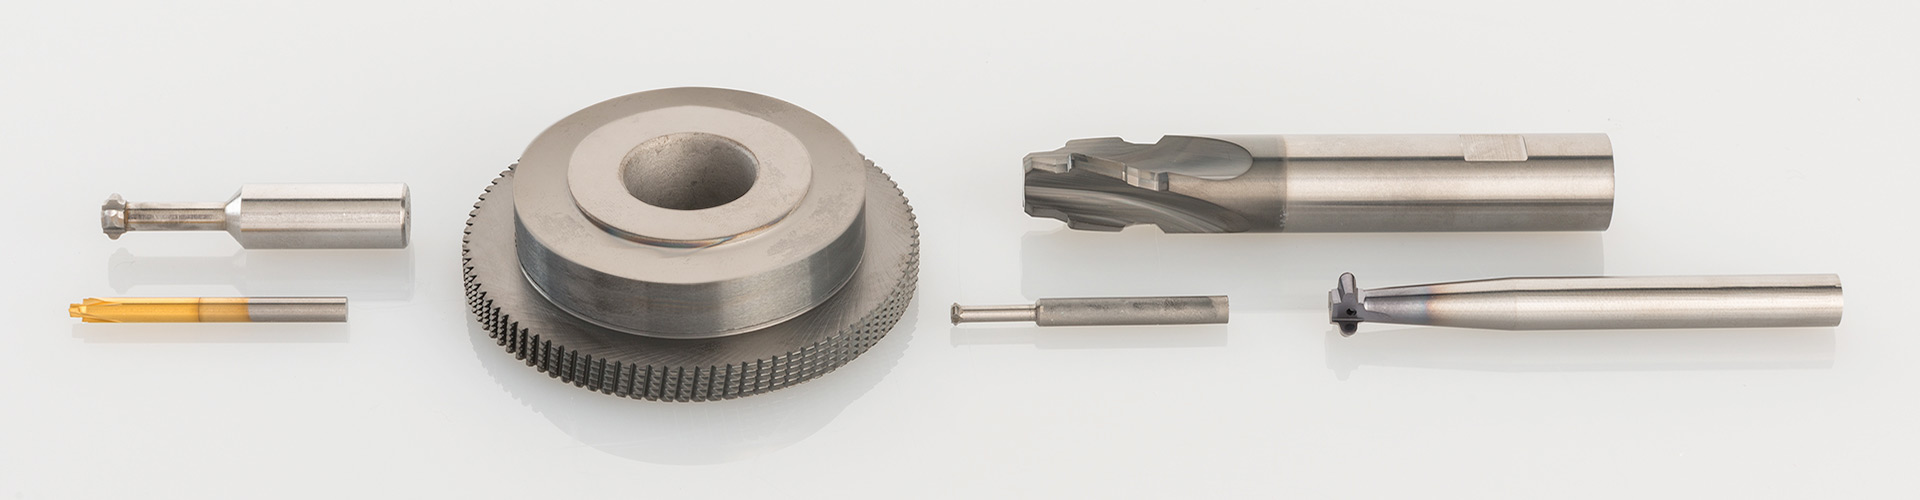 Form Milling Cutters from Fische Special Tooling